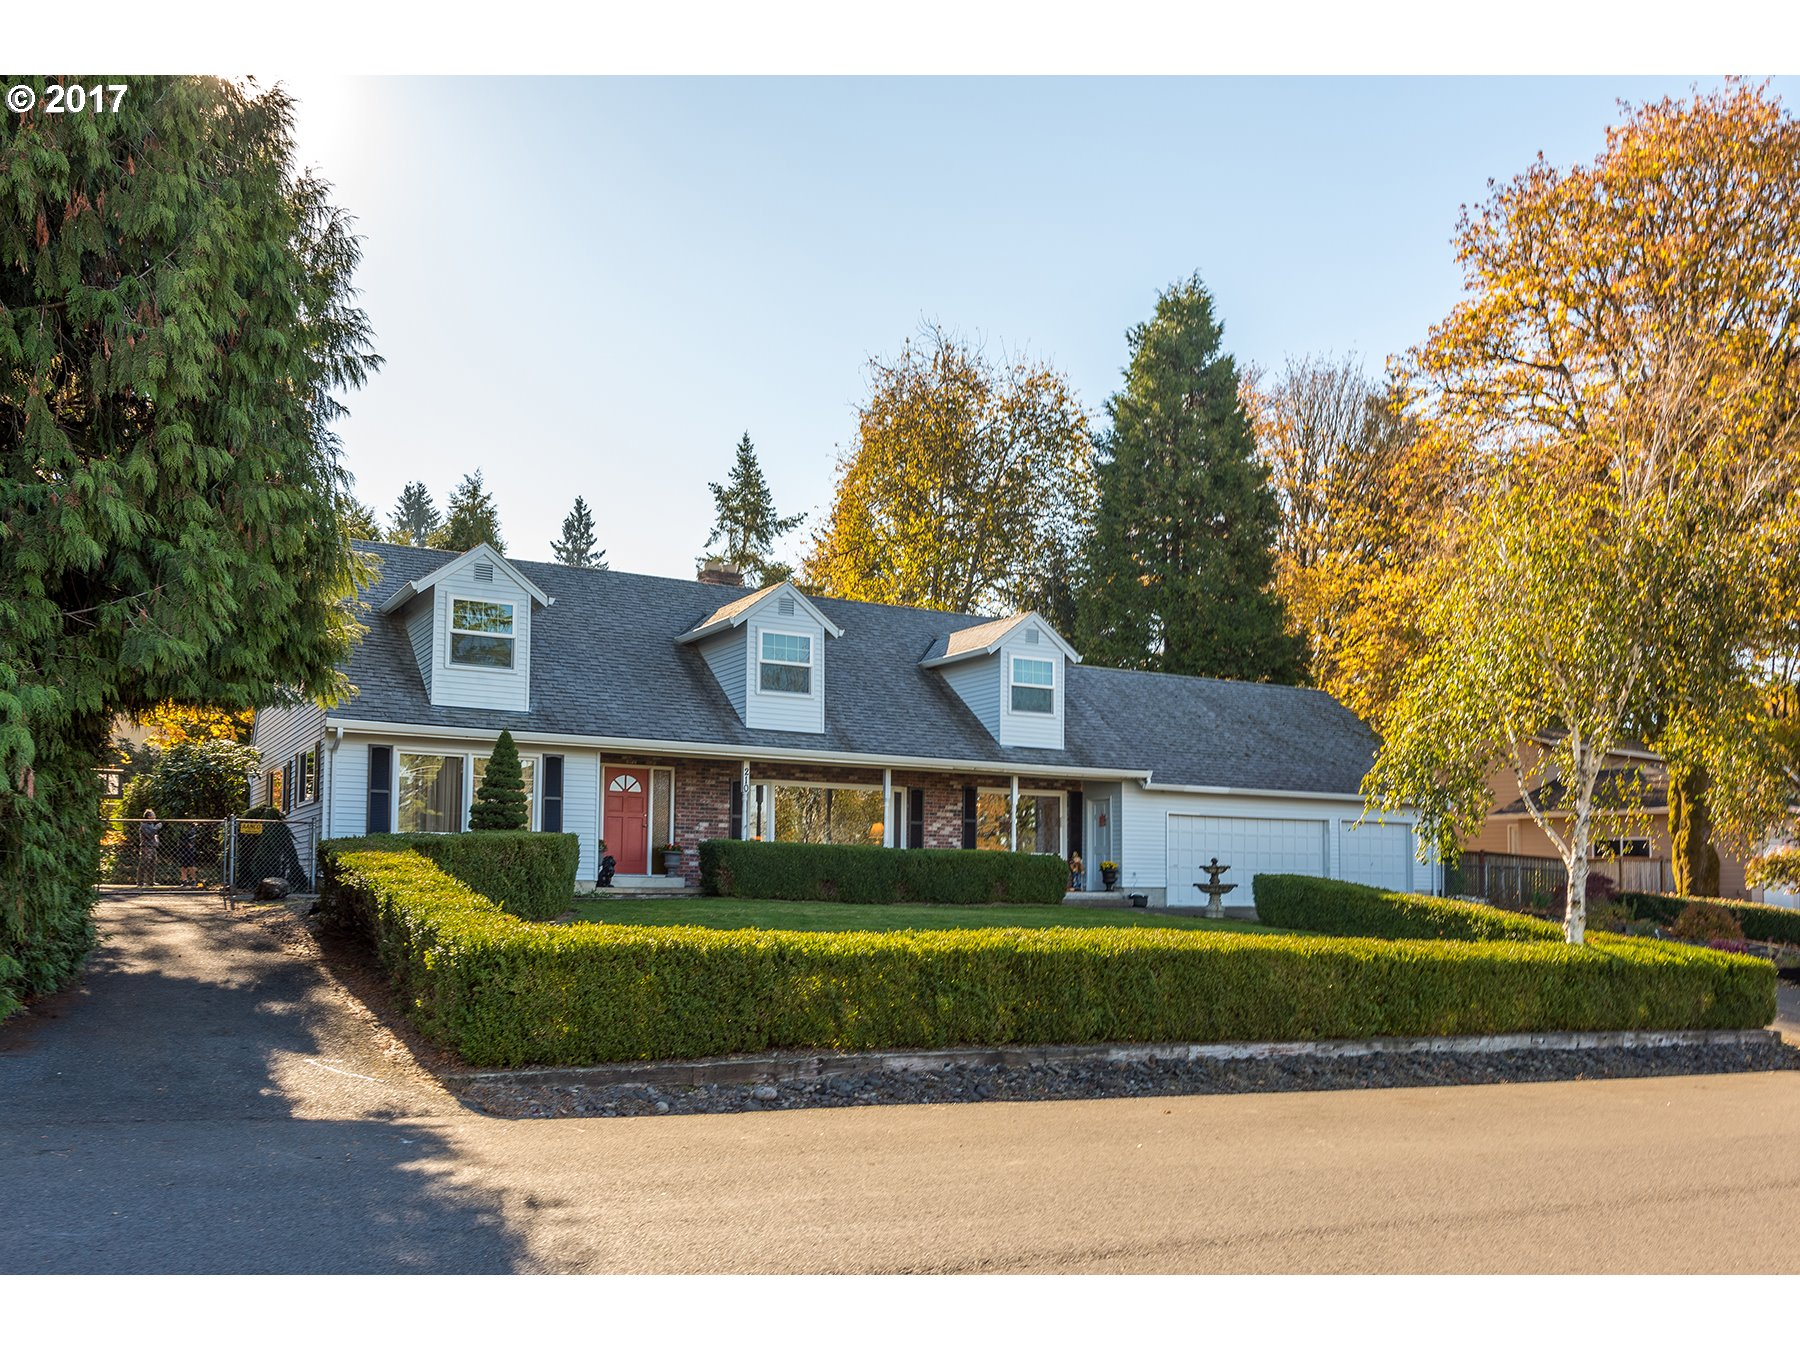 210 OGDEN DR, Oregon City, OR 97045